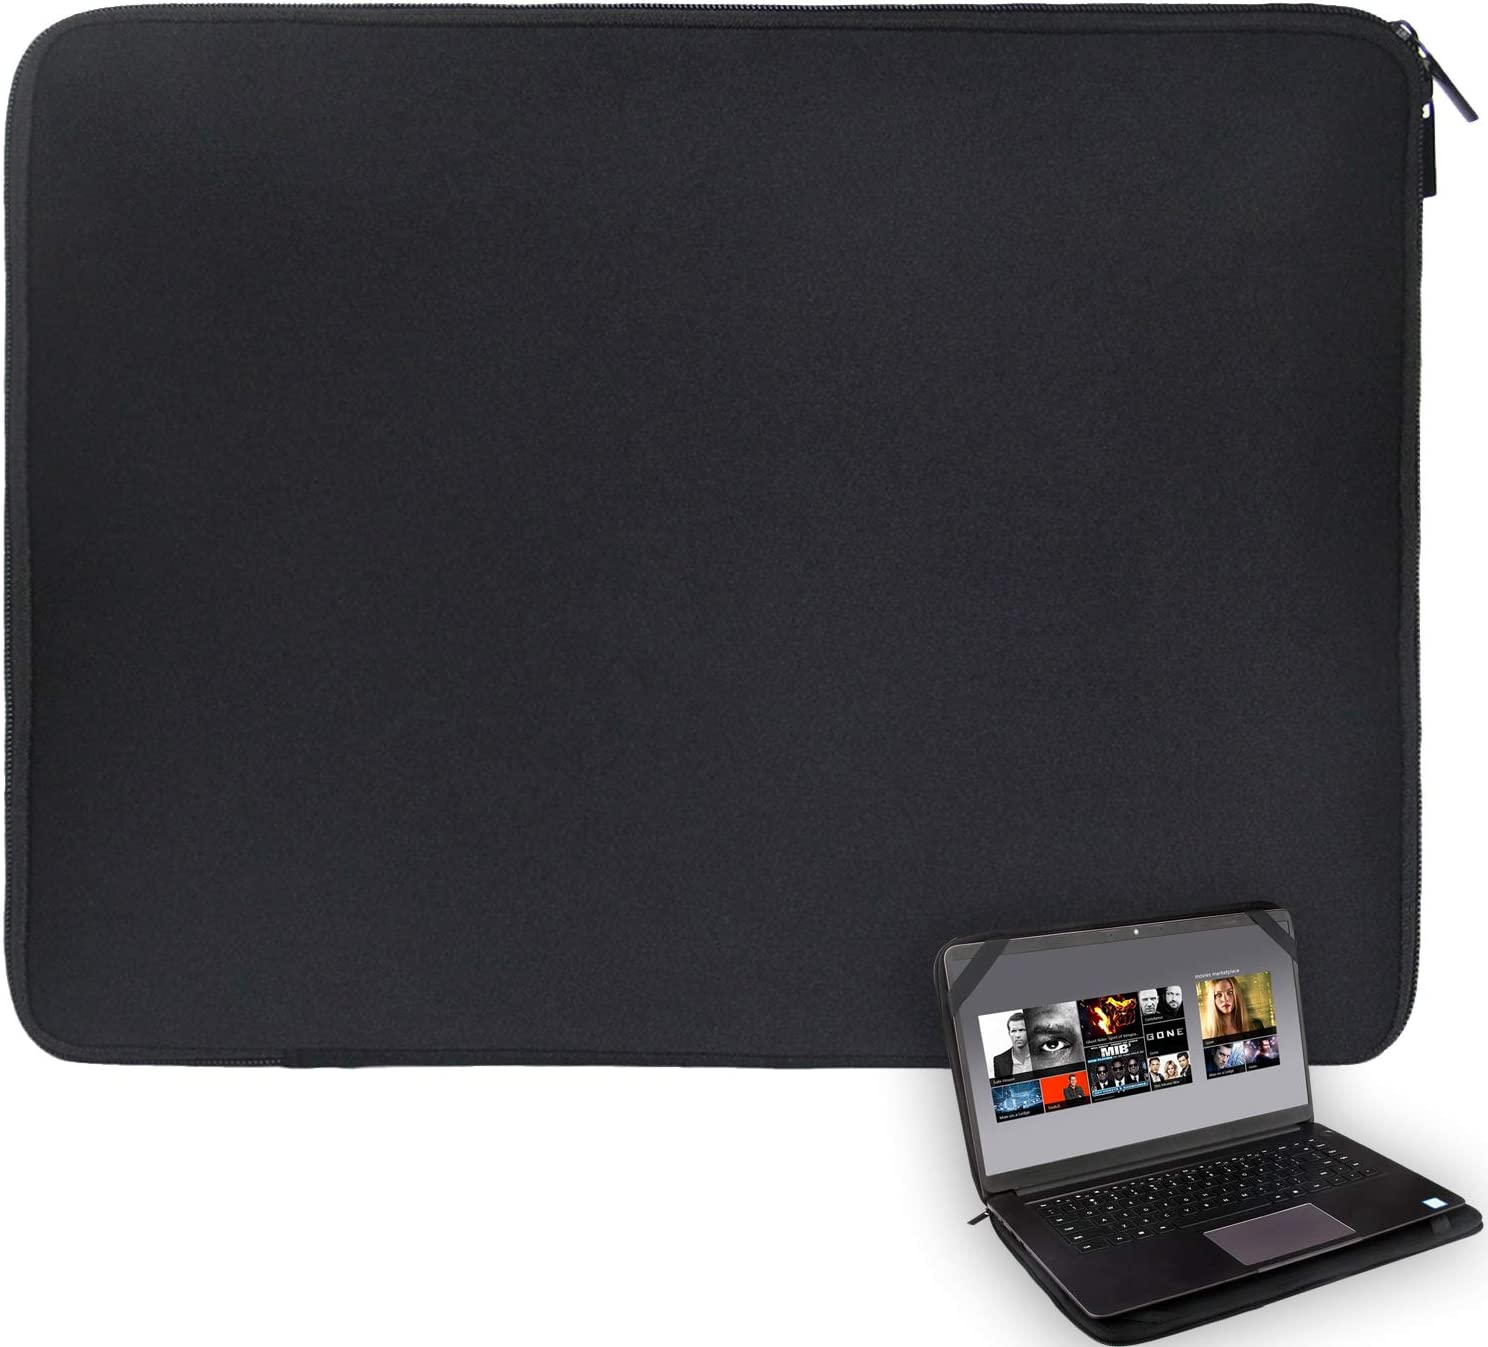 "15.6 Inch Laptop Case Sleeve Protector Notebook Pouch Cover 15.3inch x 11.4inch with 4 Elastic Bands for 15"" 15.6"" Samsung Sony ASUS Acer Lenovo Dell HP Toshiba Chromebook Computers (15-15.6 inch)"